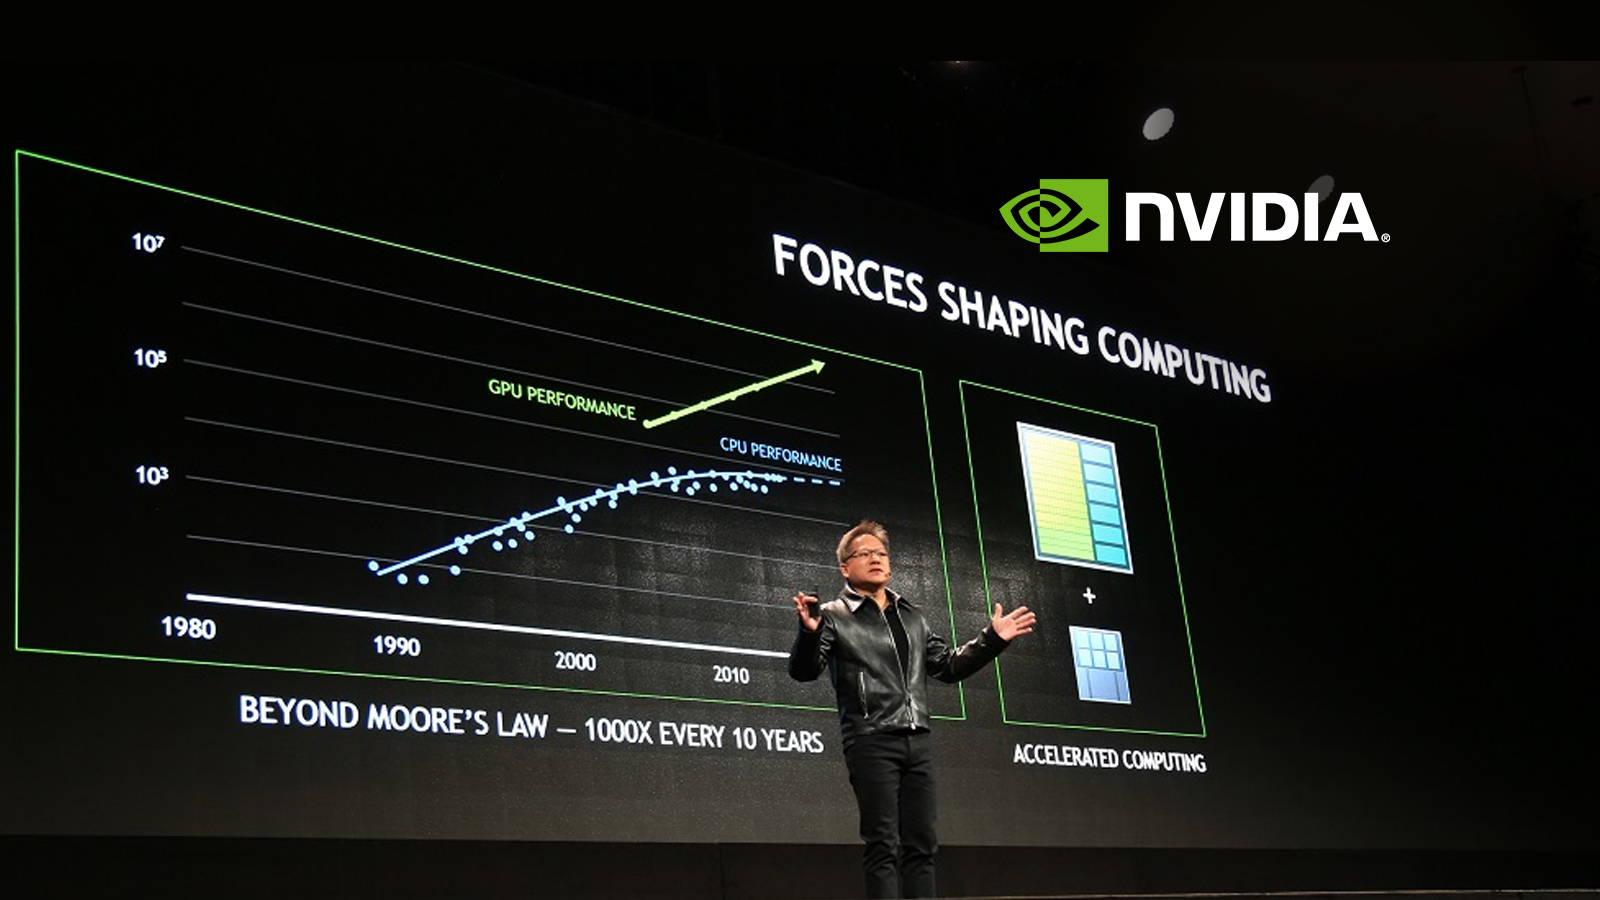 NVIDIA Launches GPU-Acceleration Platform for Data Science